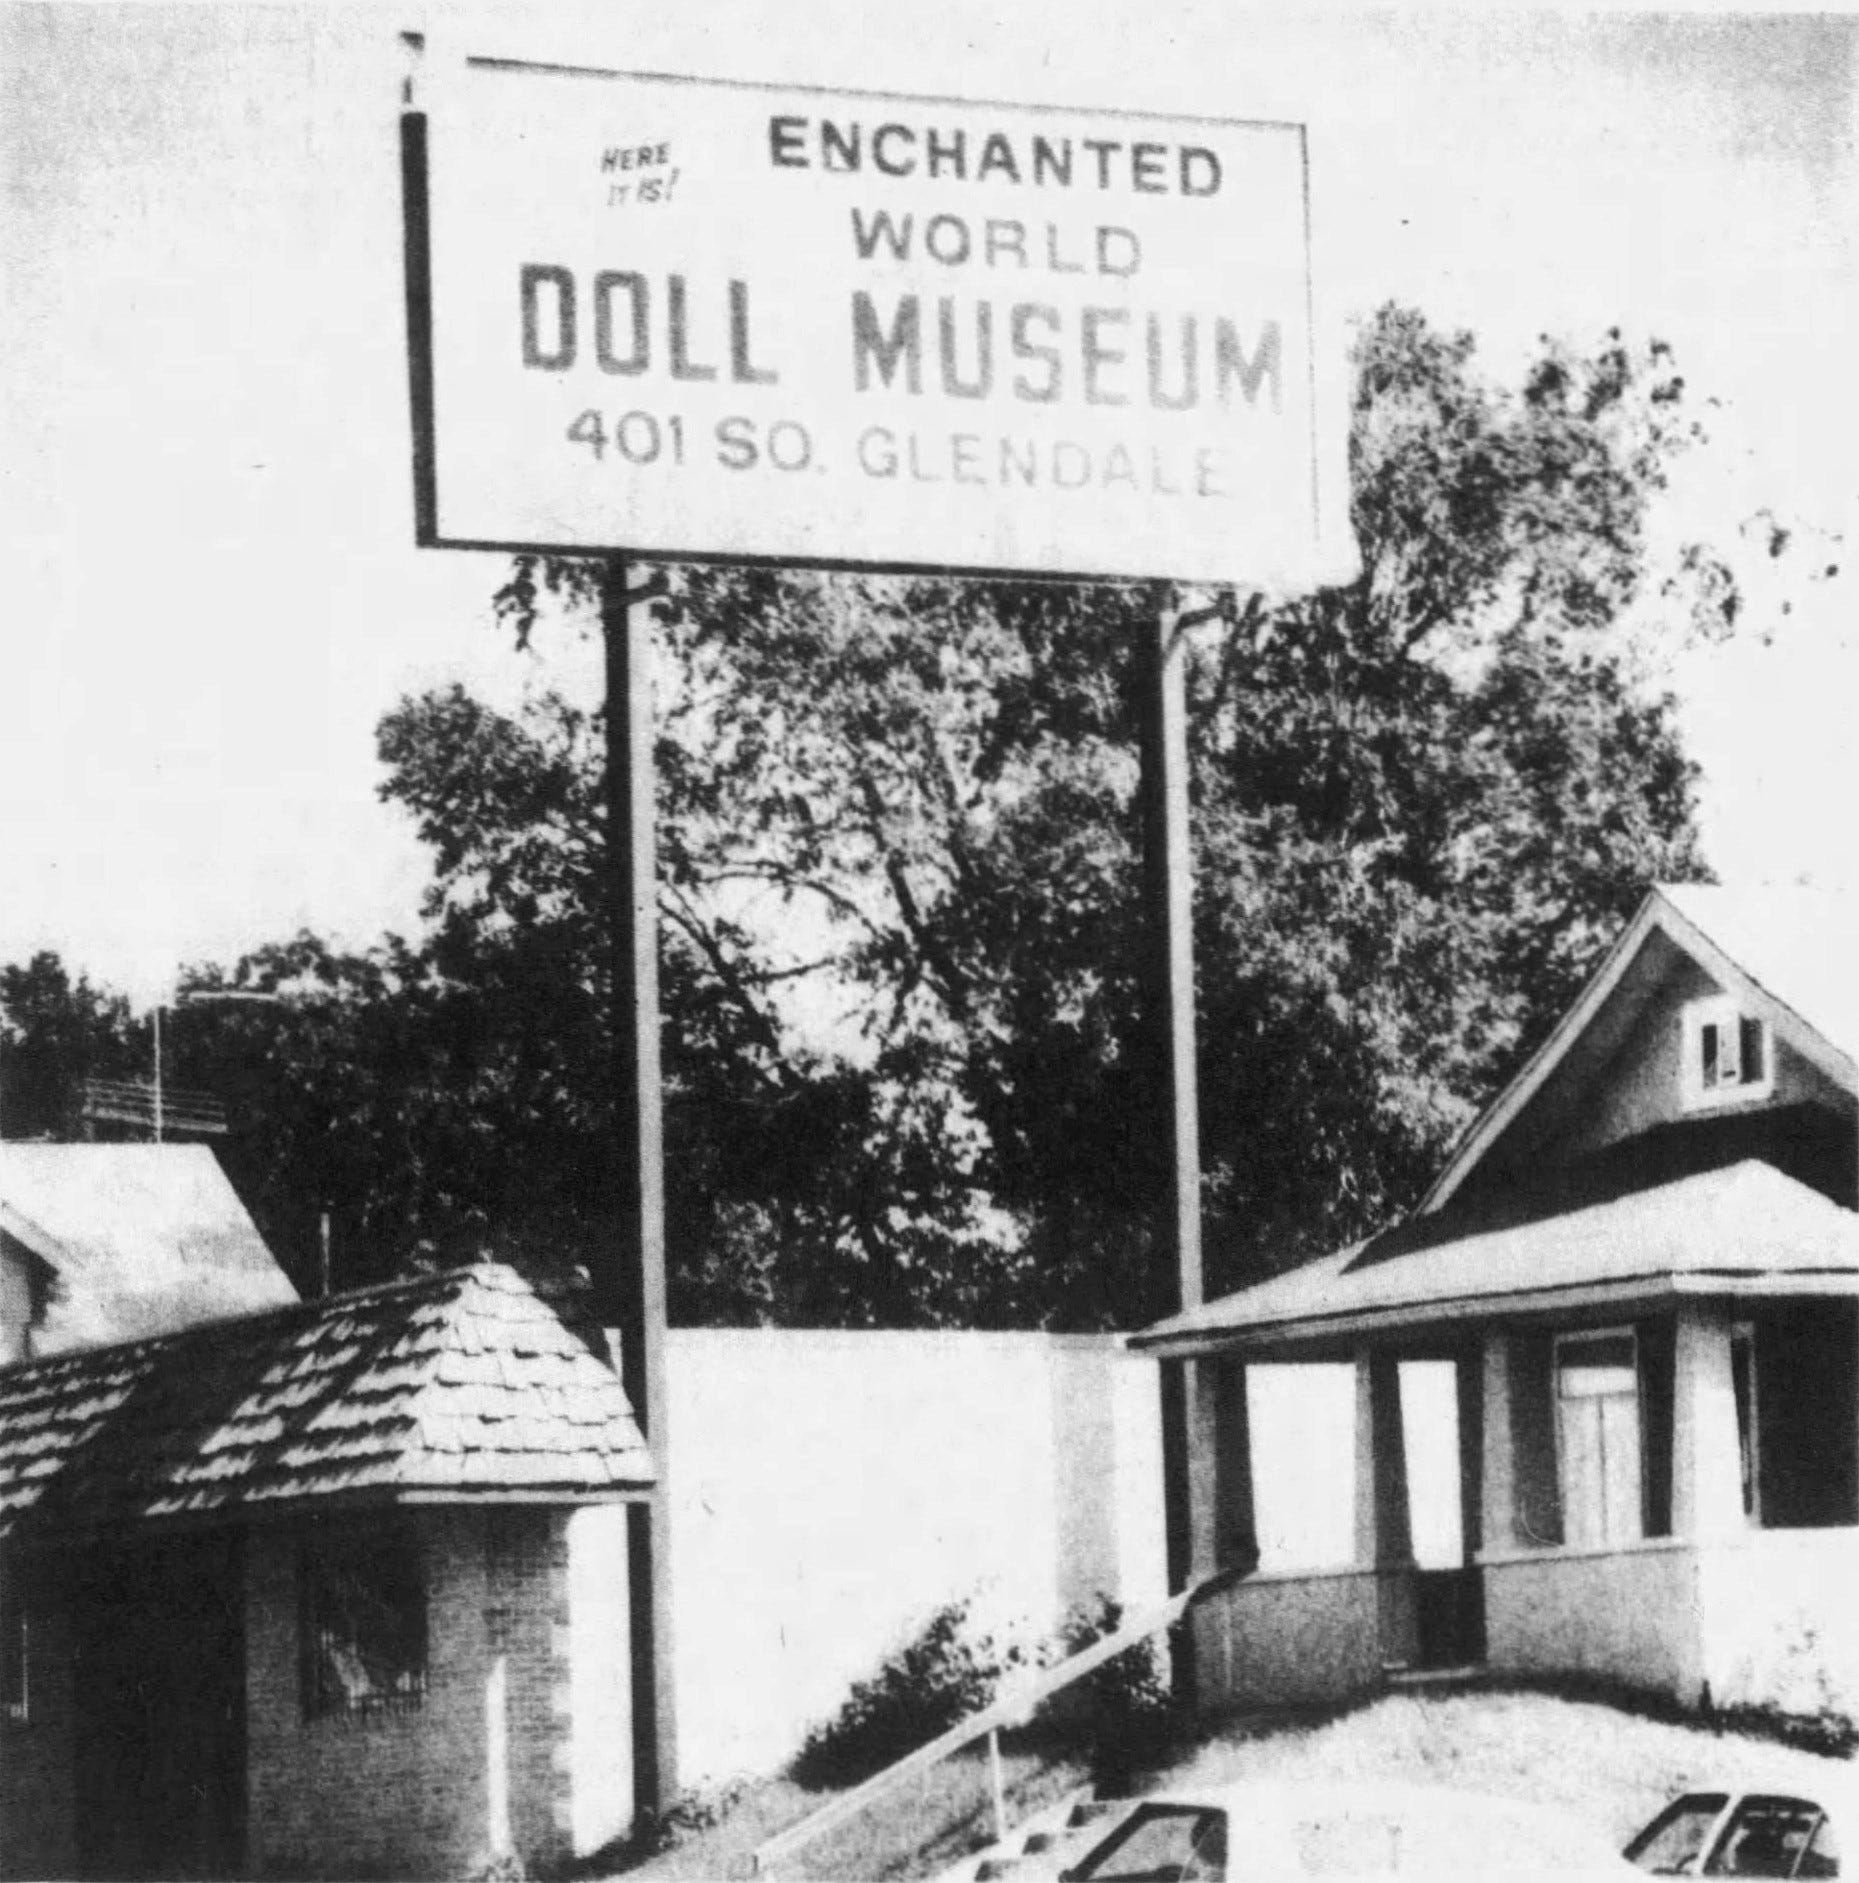 Looking Back: Enchanted World Doll Museum has short run in Sioux Falls